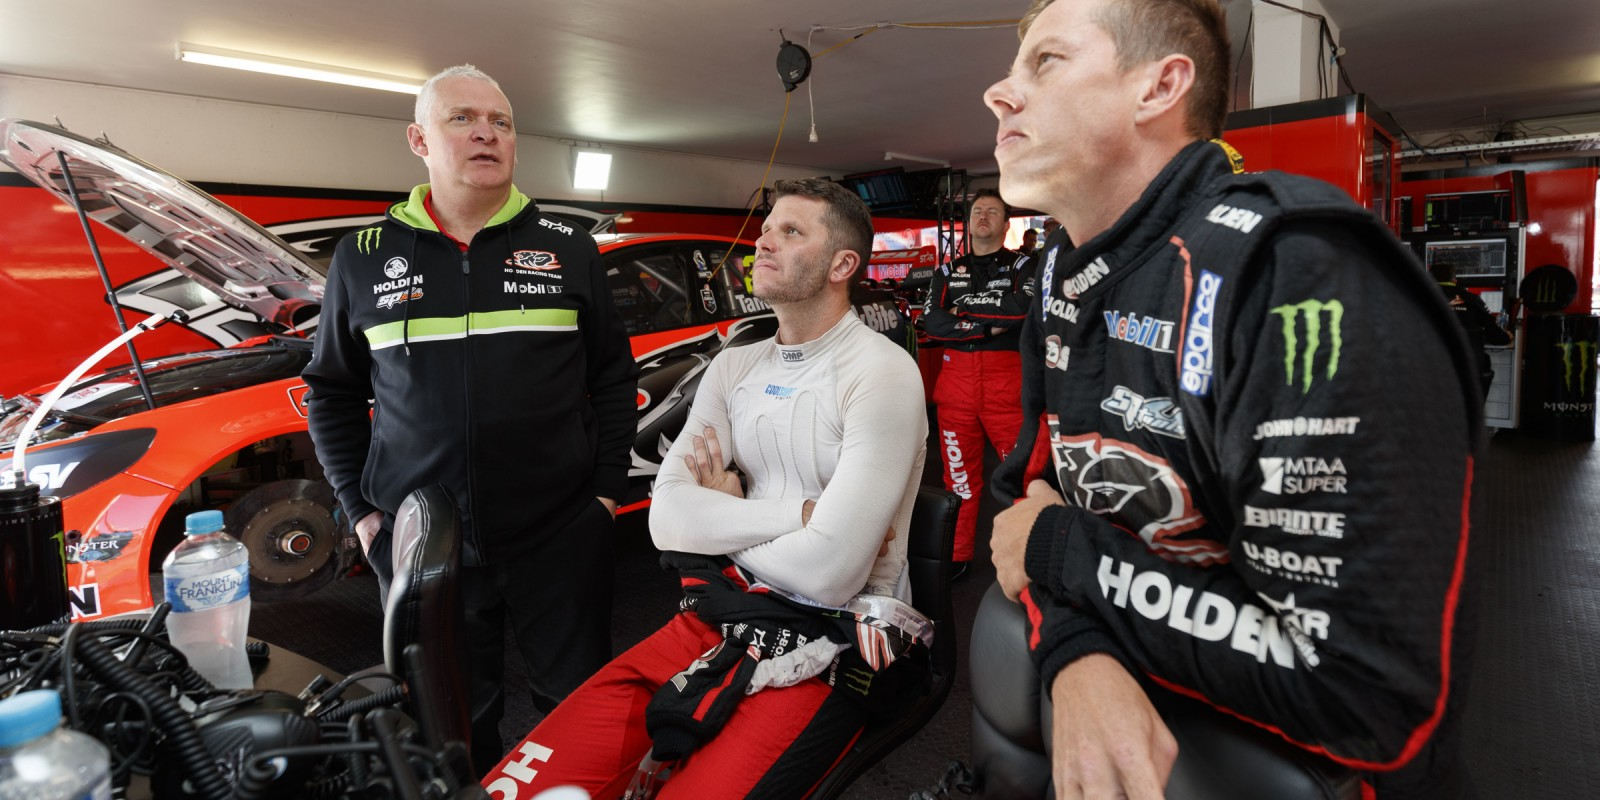 V8 Supercars - Perth 2016 Holden Racing Team - James Courtney and Garth Tander